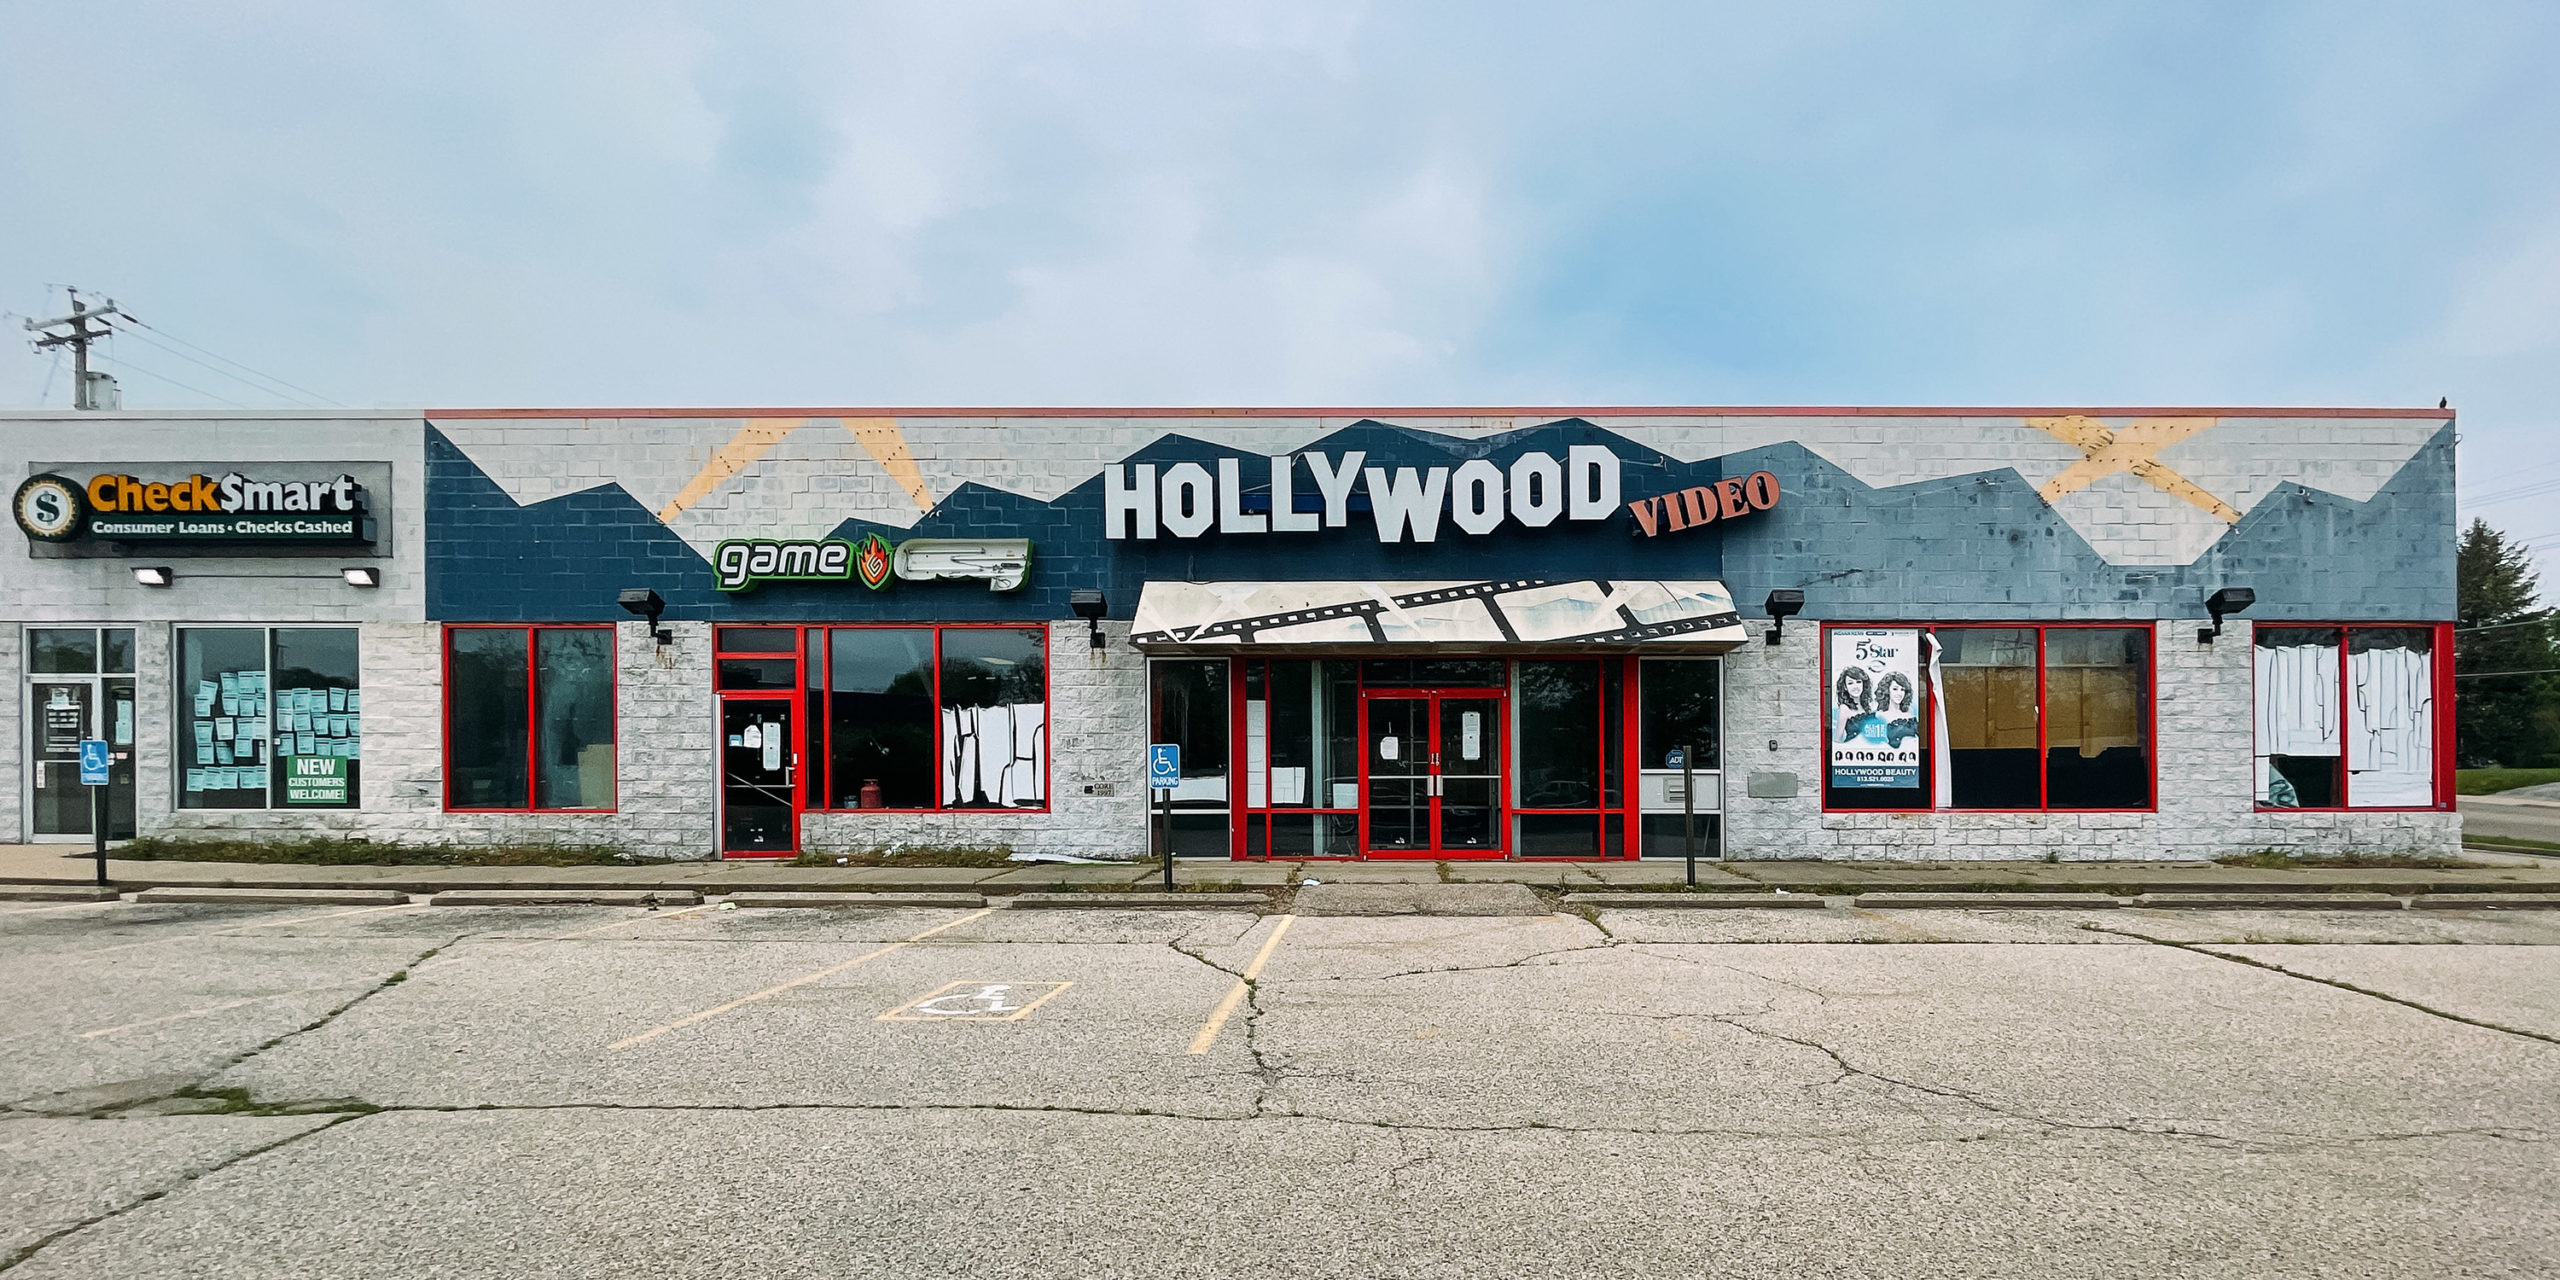 An abandoned Hollywood Video store in North College Hill Ohio